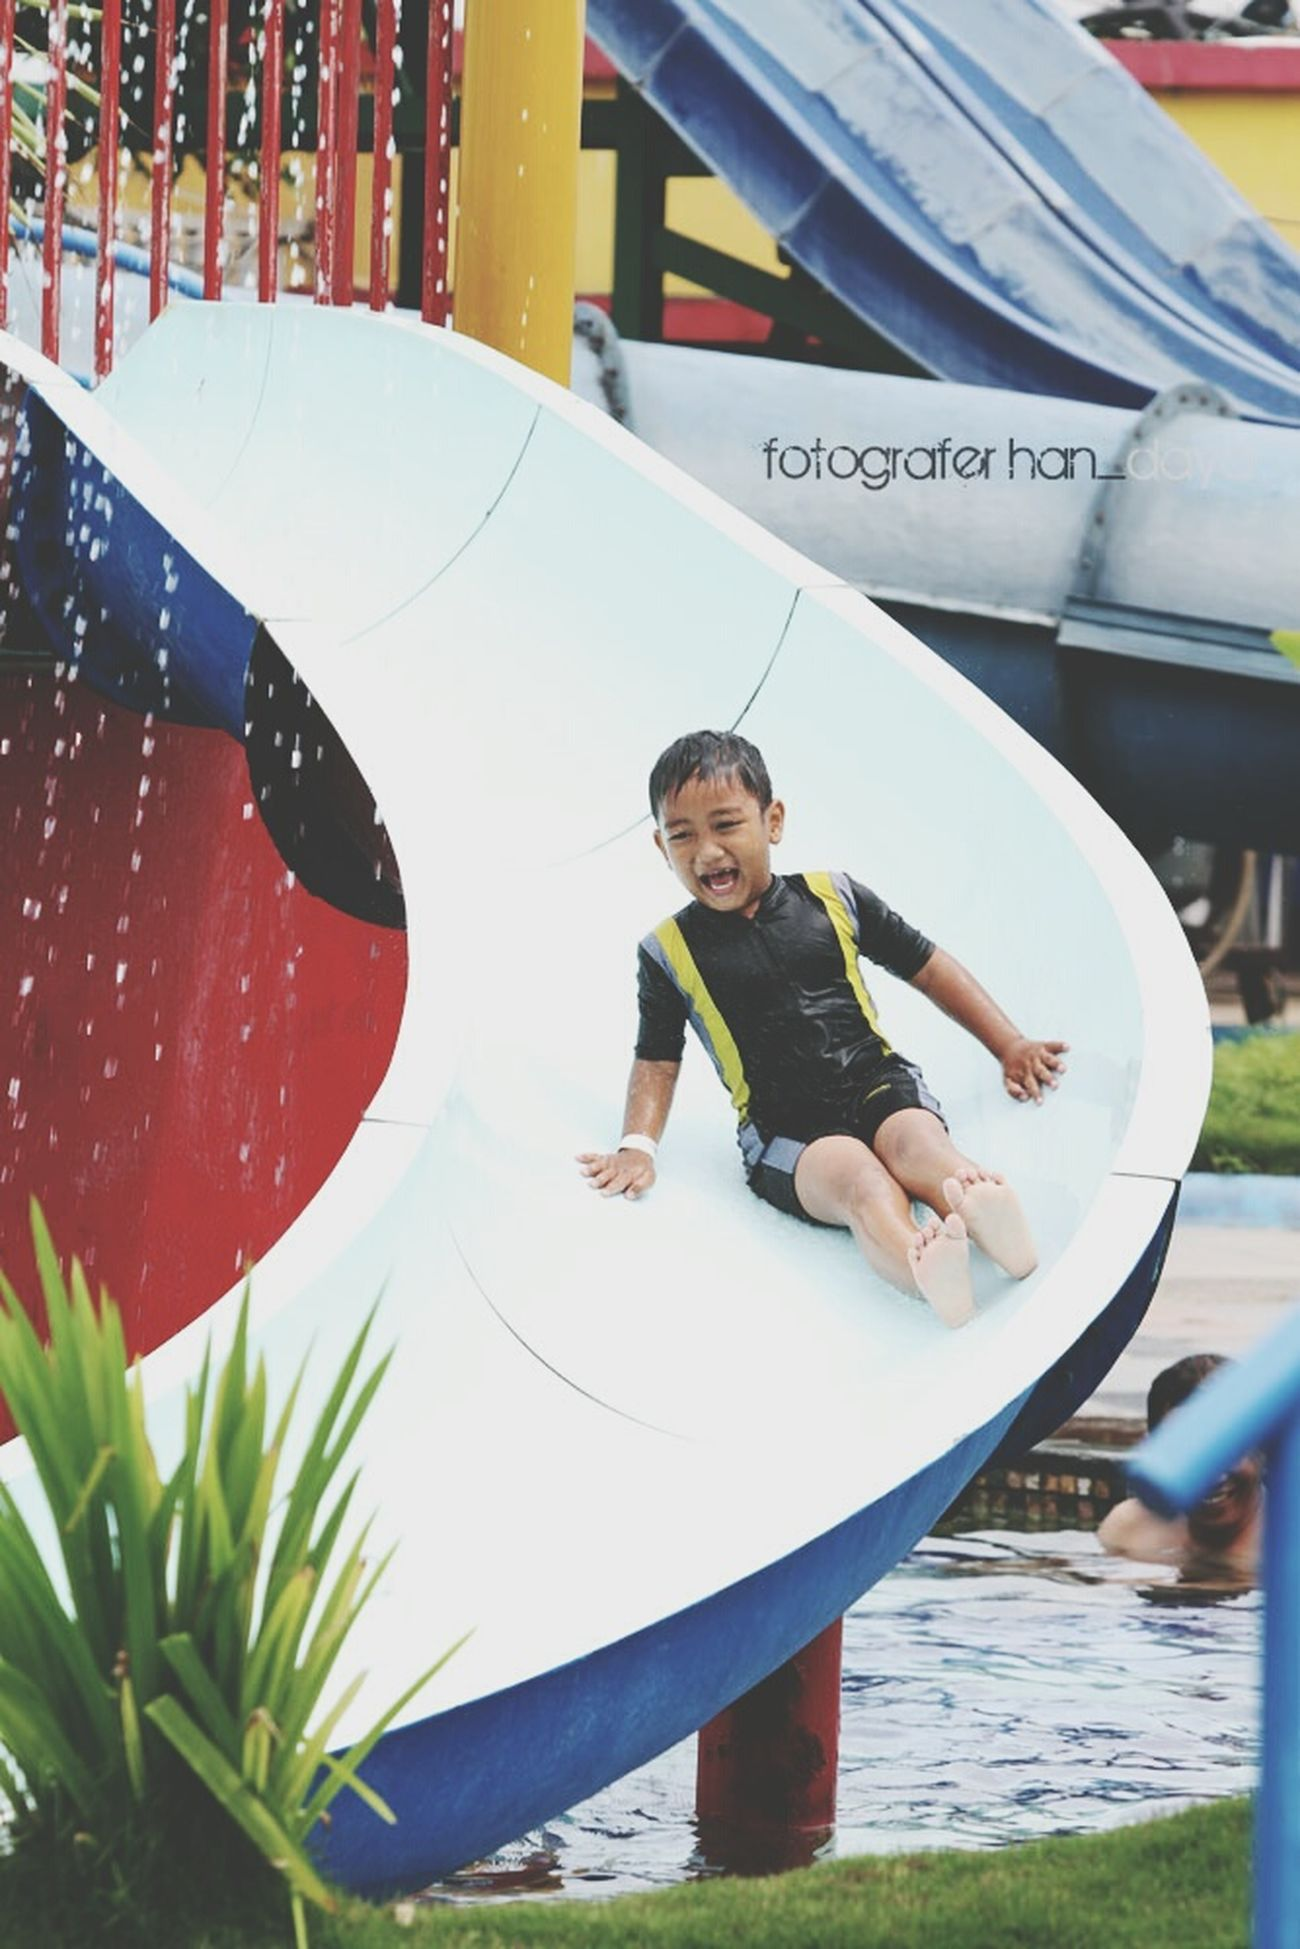 Funny Comel Waterboom Enjoying Life Hunting Photo Kids Have Fun HaveFun